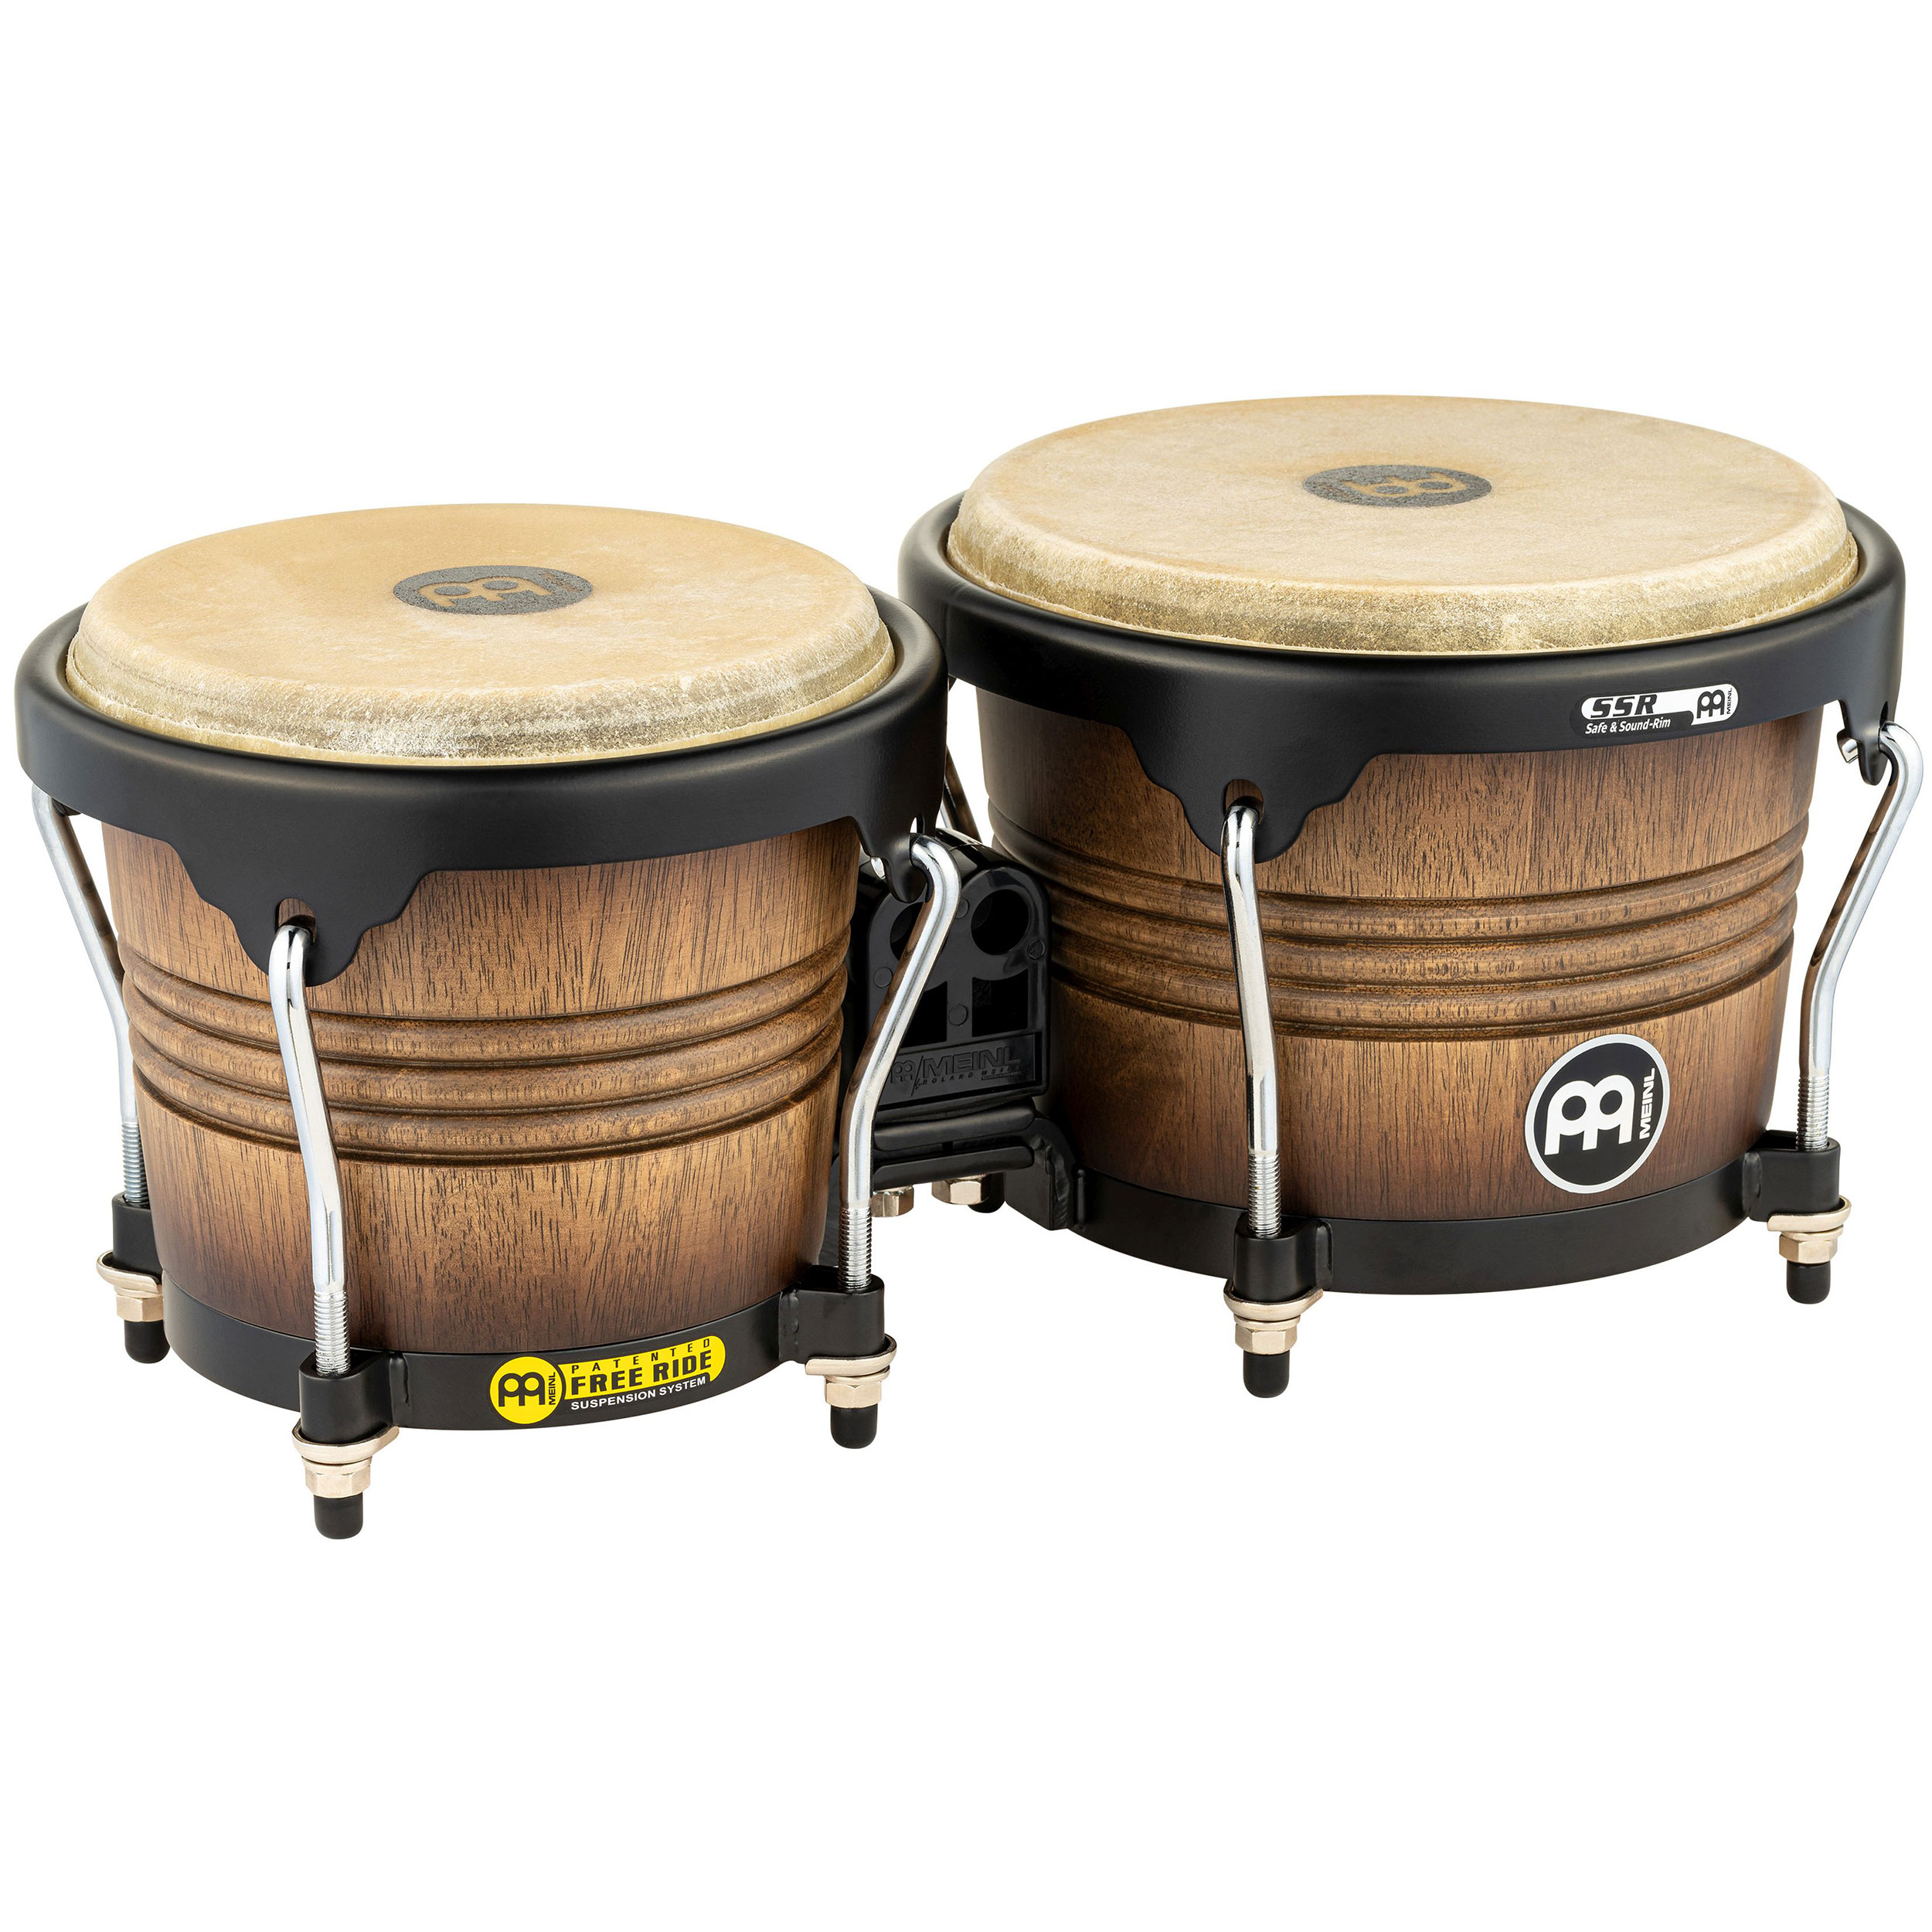 "Meinl 6.75"" & 8"" Free Ride Series Wood Bongos in Antique Tobacco Burst"